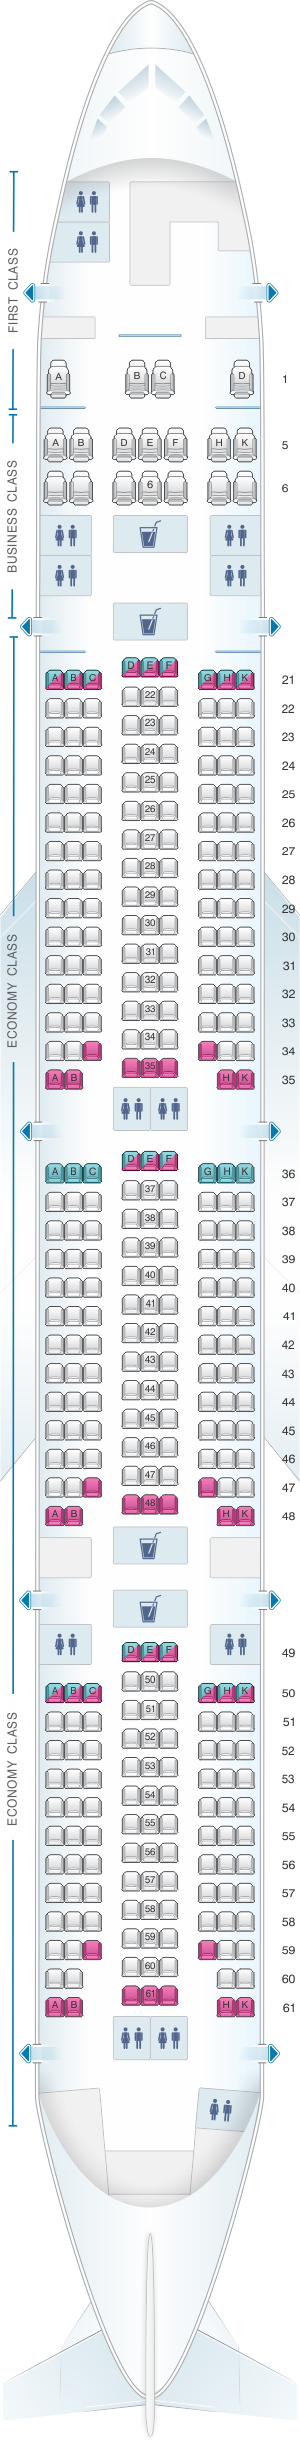 Seat map for Rossiya Airlines Boeing B777 300